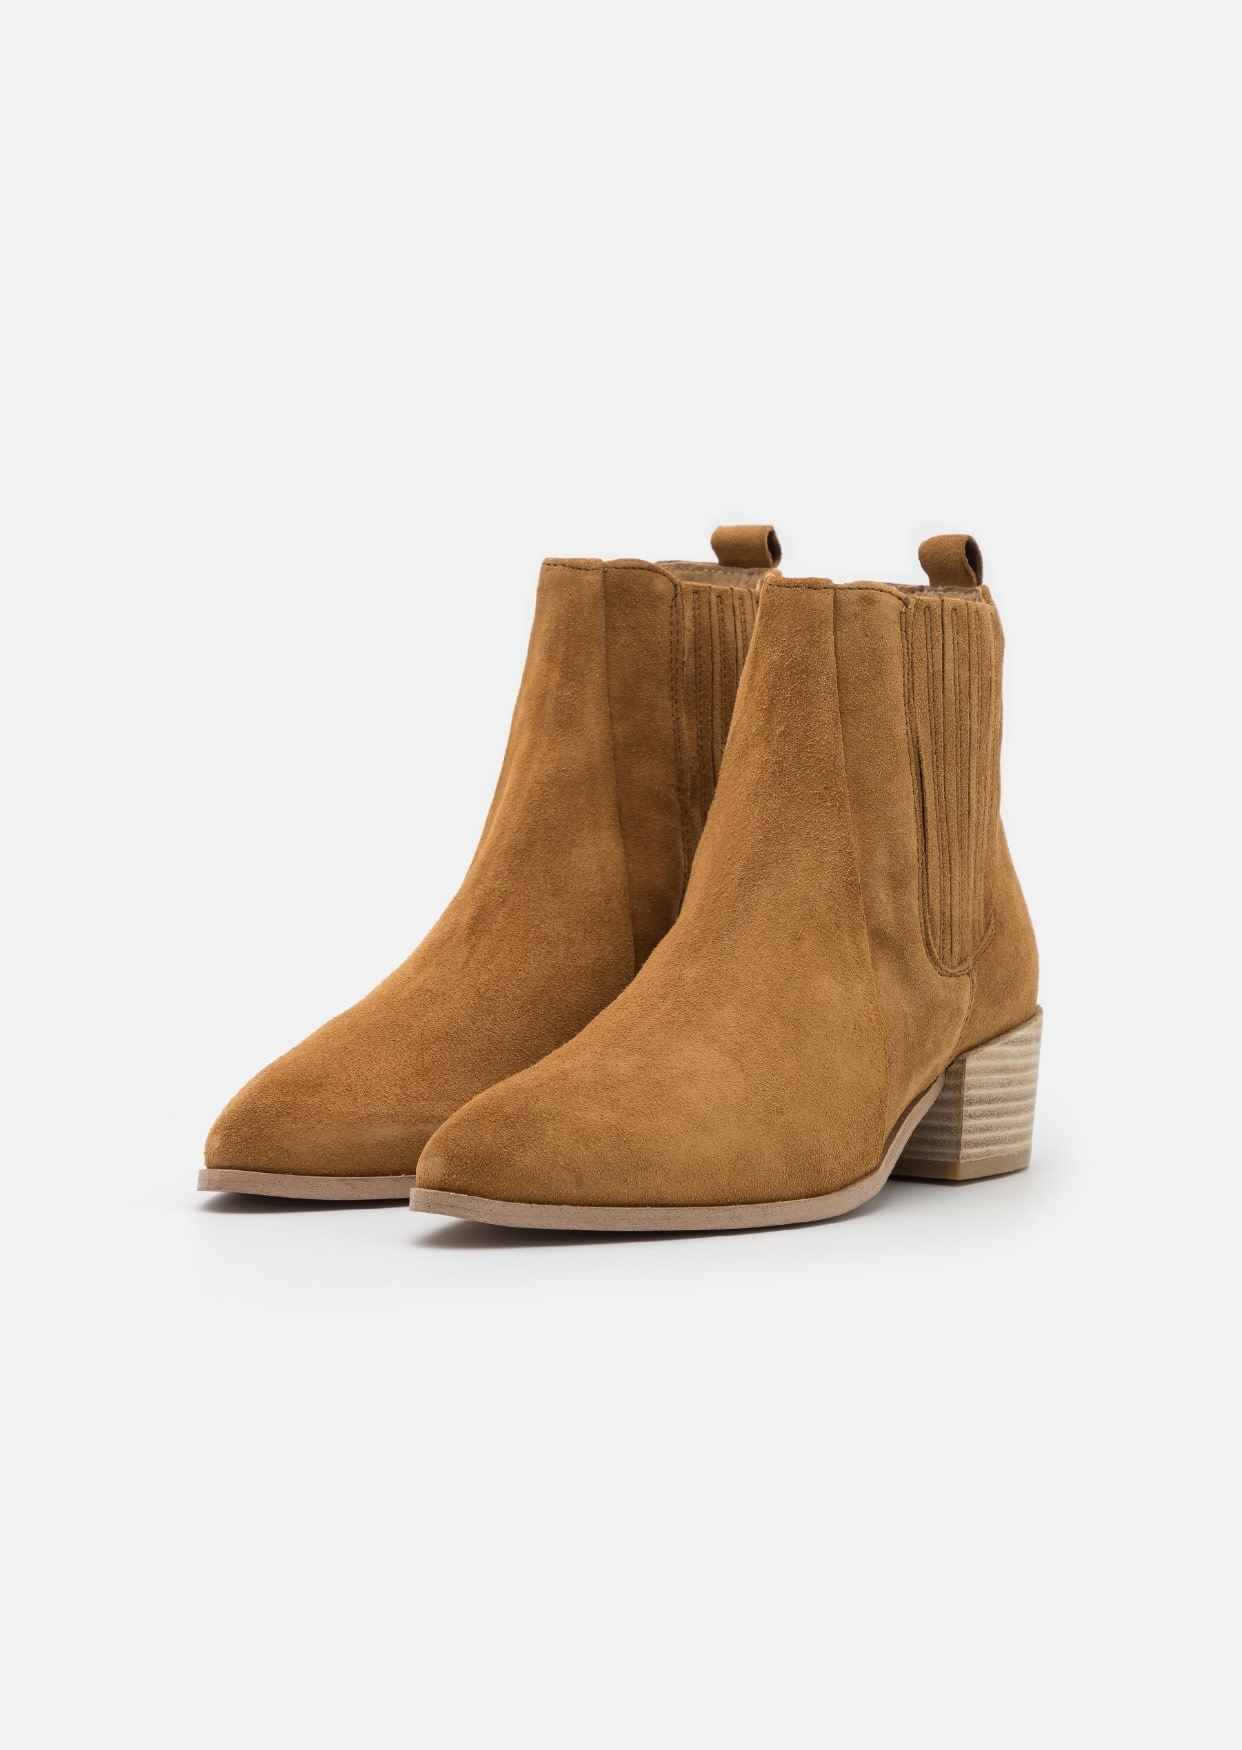 Boot Tan Suede-1